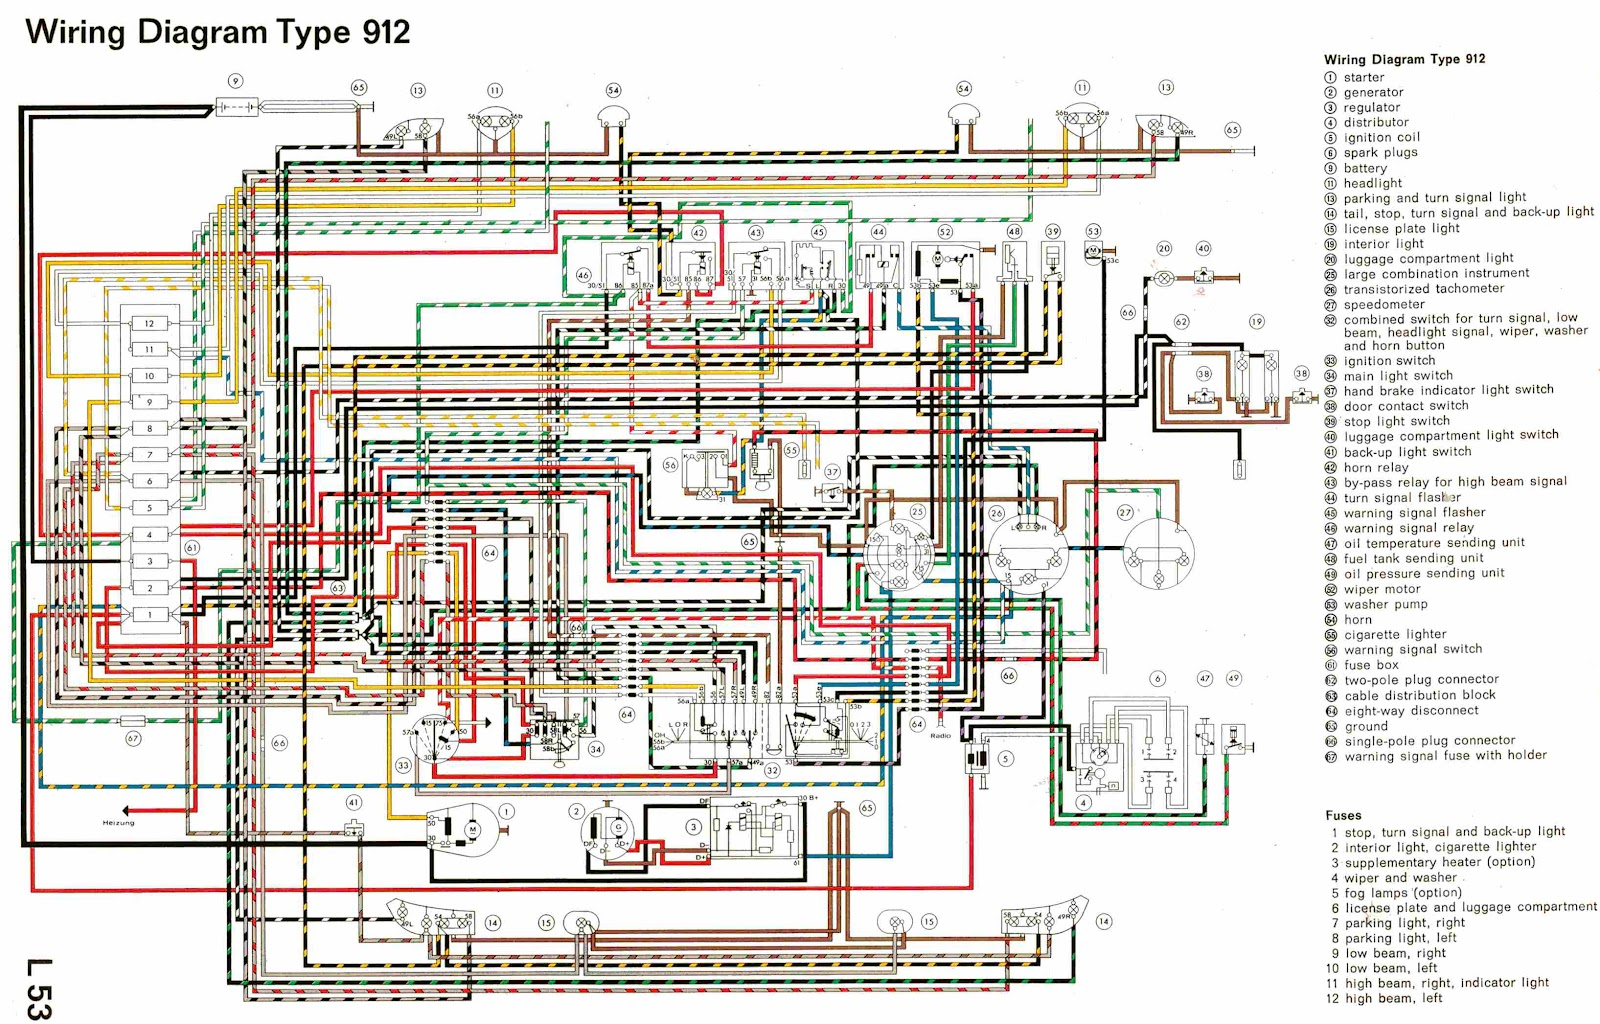 electric wiring diagram car 99 mitsubishi eclipse alternator porsche type 912 complete electrical all